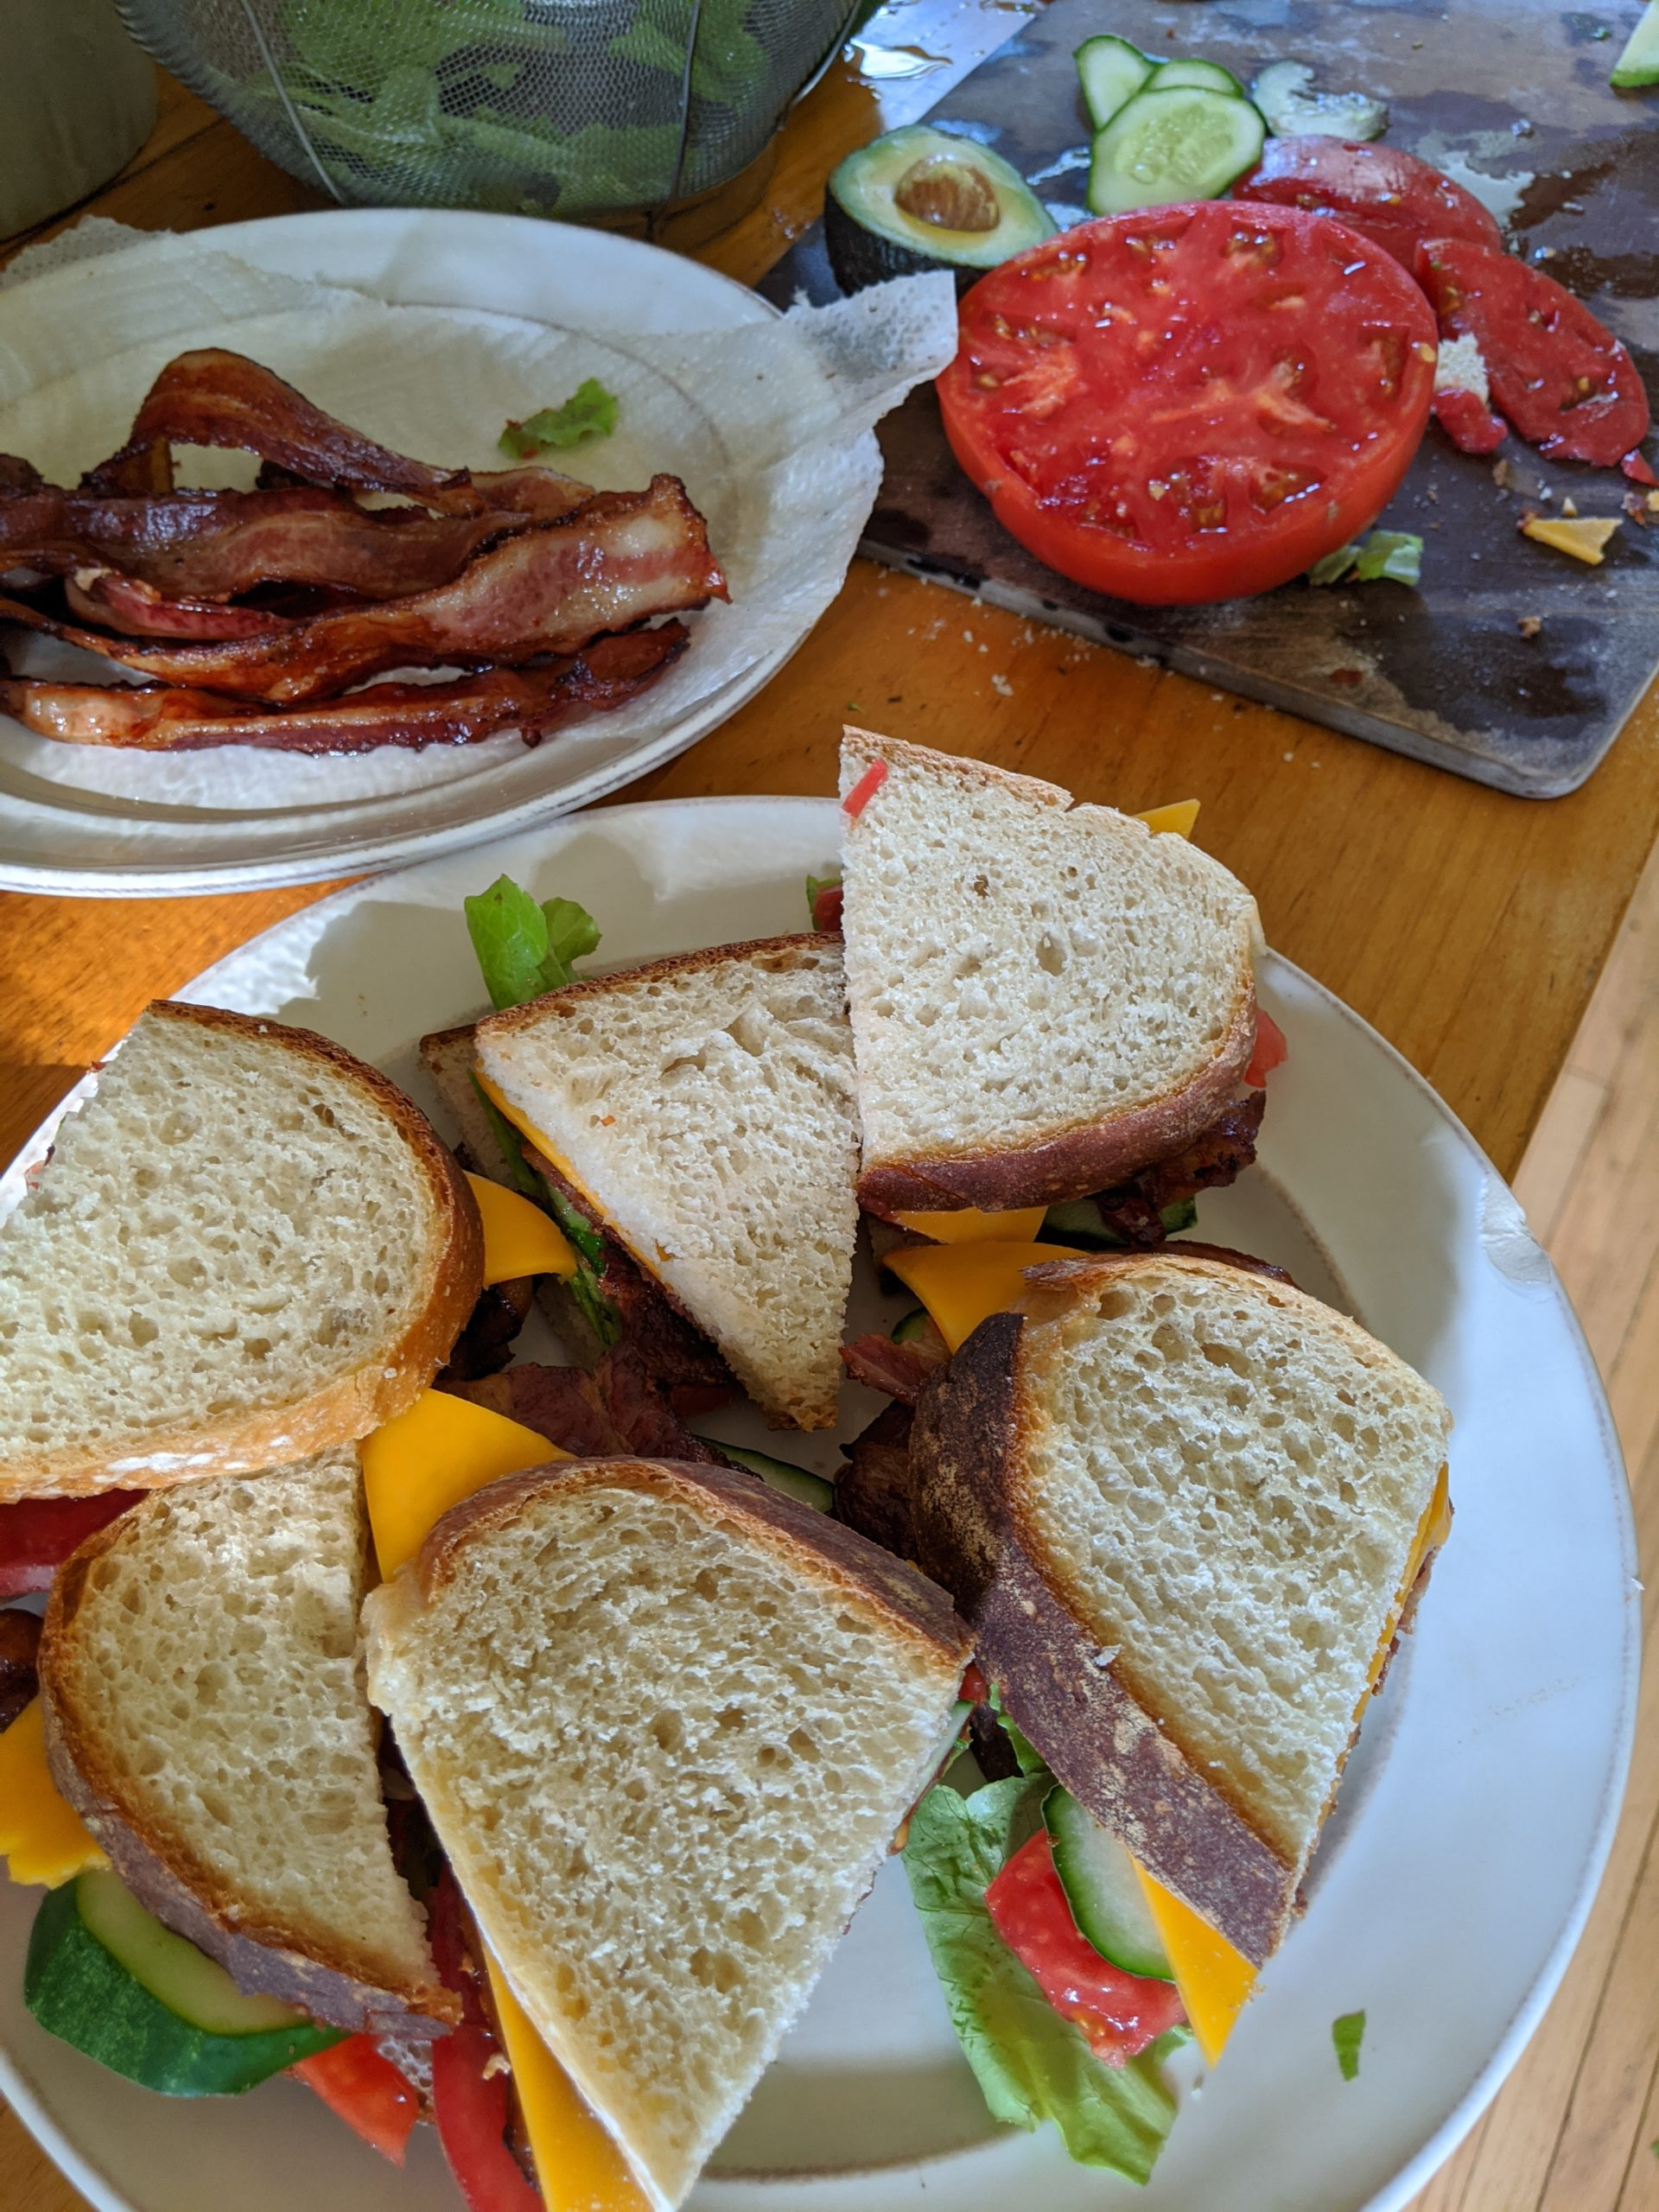 BLT plus Avocado and Cheese